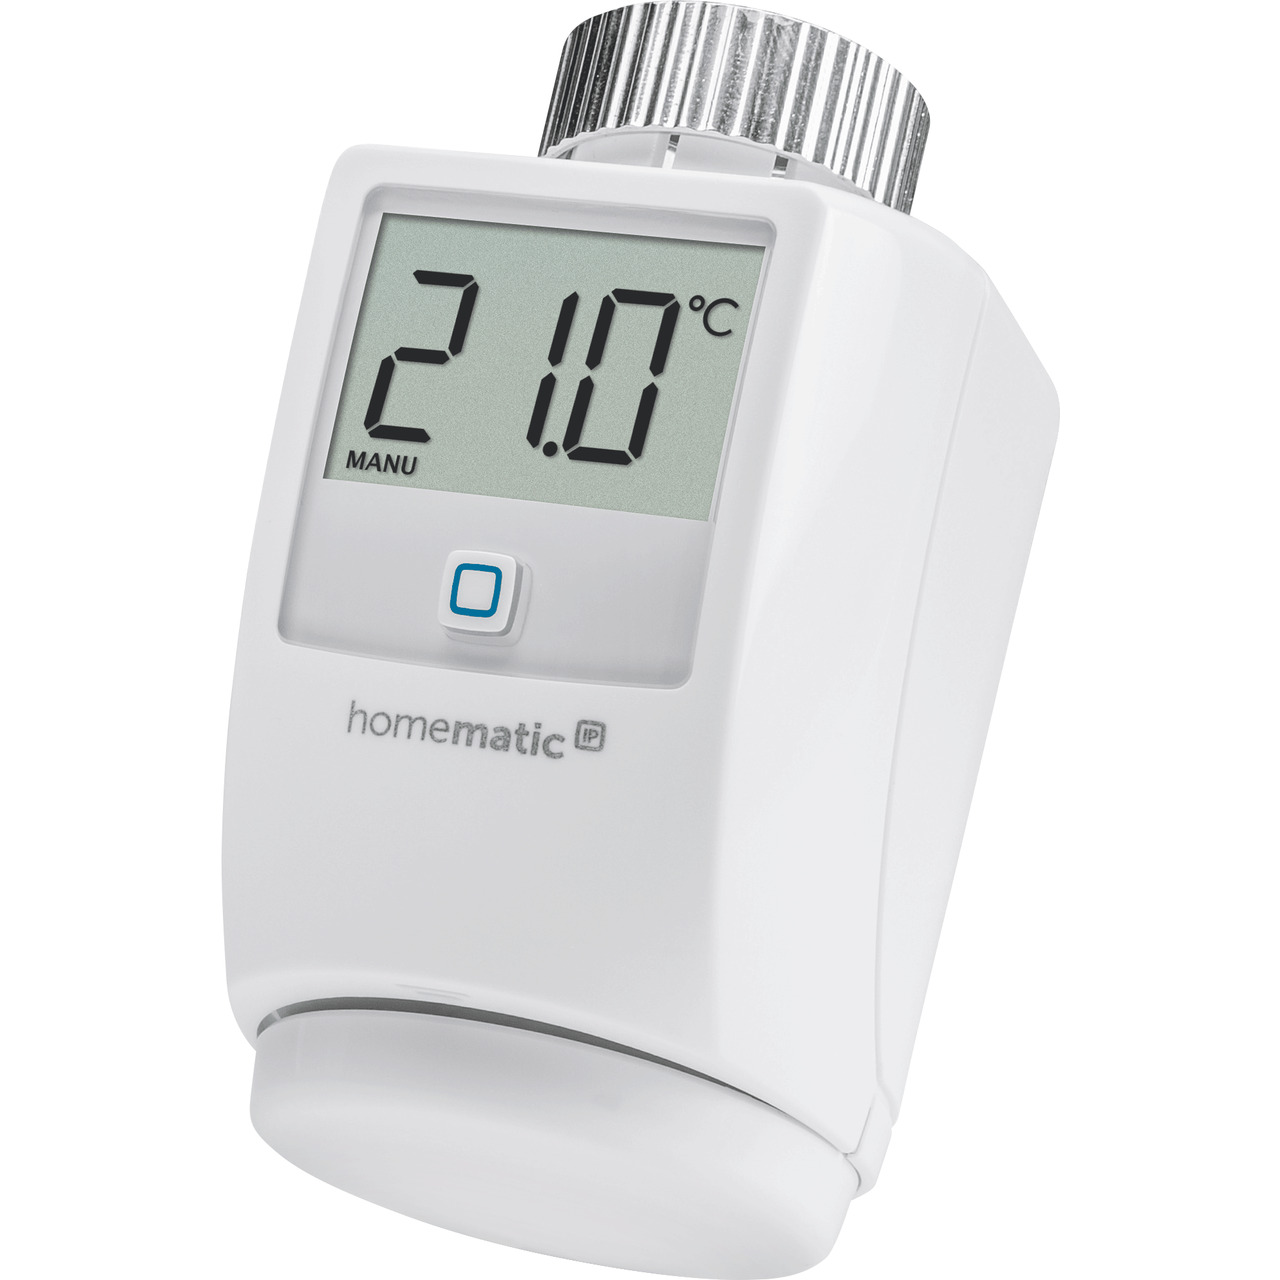 Homematic IP Heizkörperthermostat HMIP-eTRV-2 für Smart Home - Hausautomation